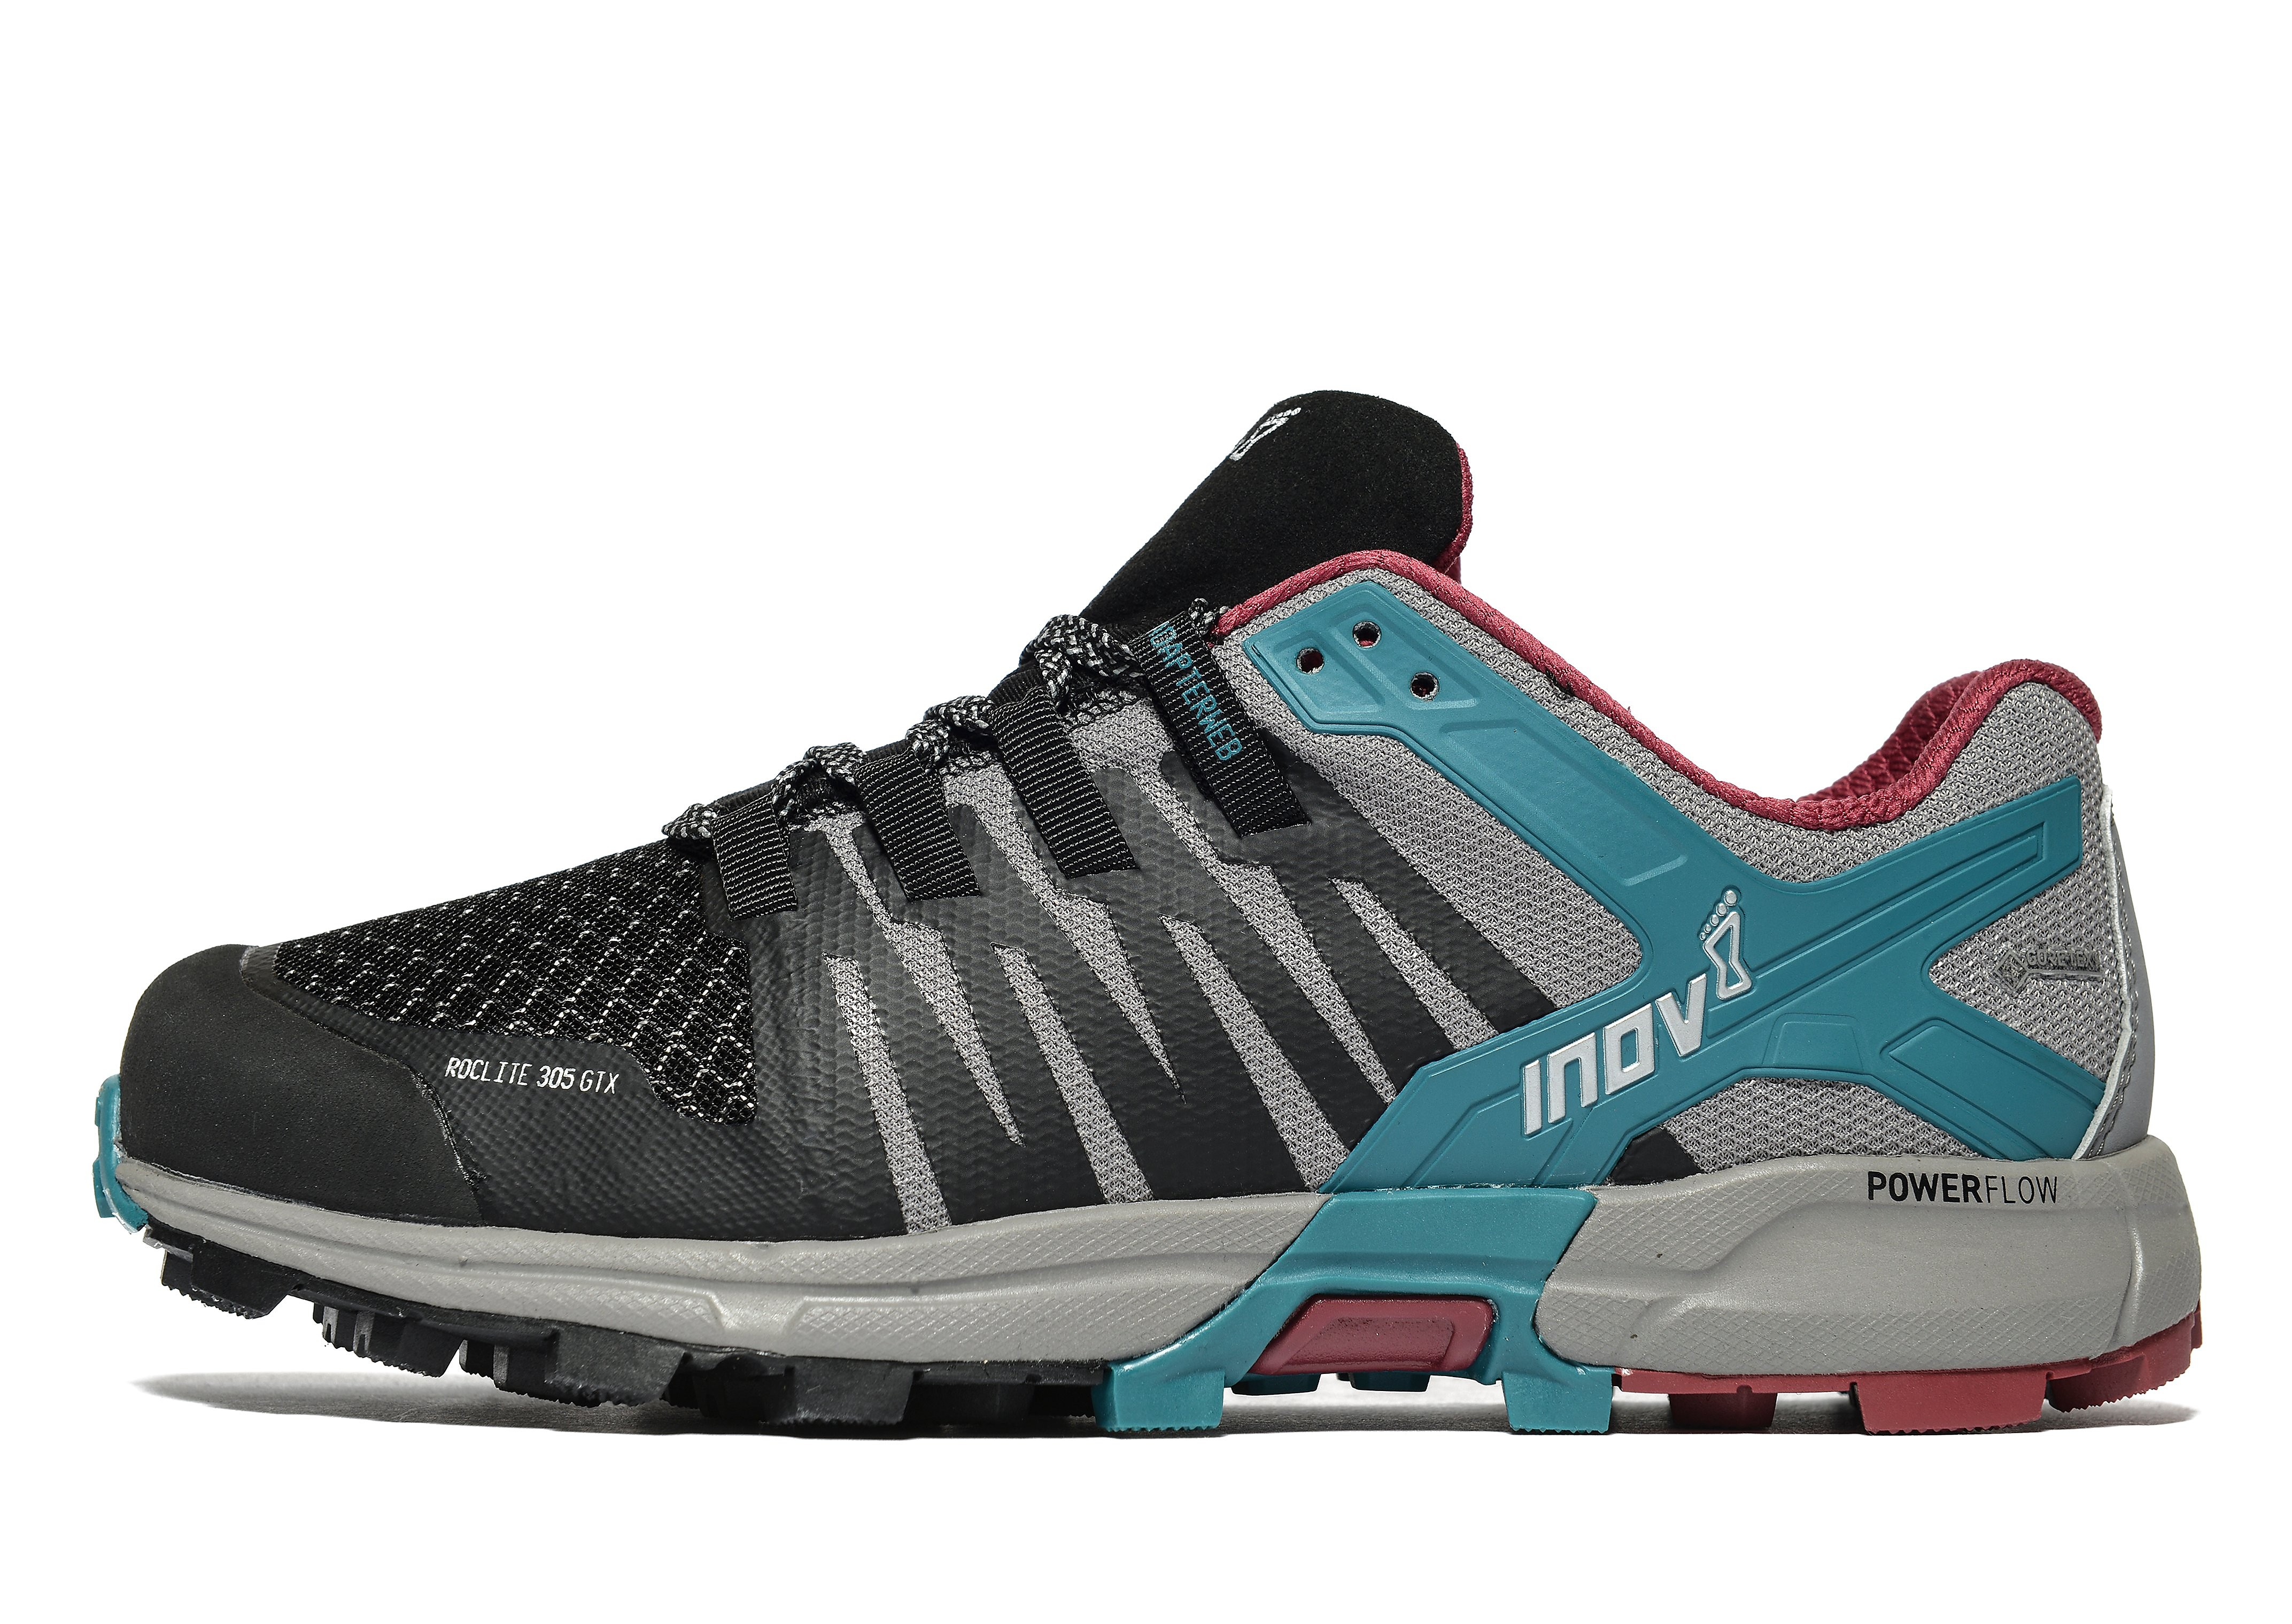 Inov-8 Roclite 305 GTX Trail Running Shoes Women's